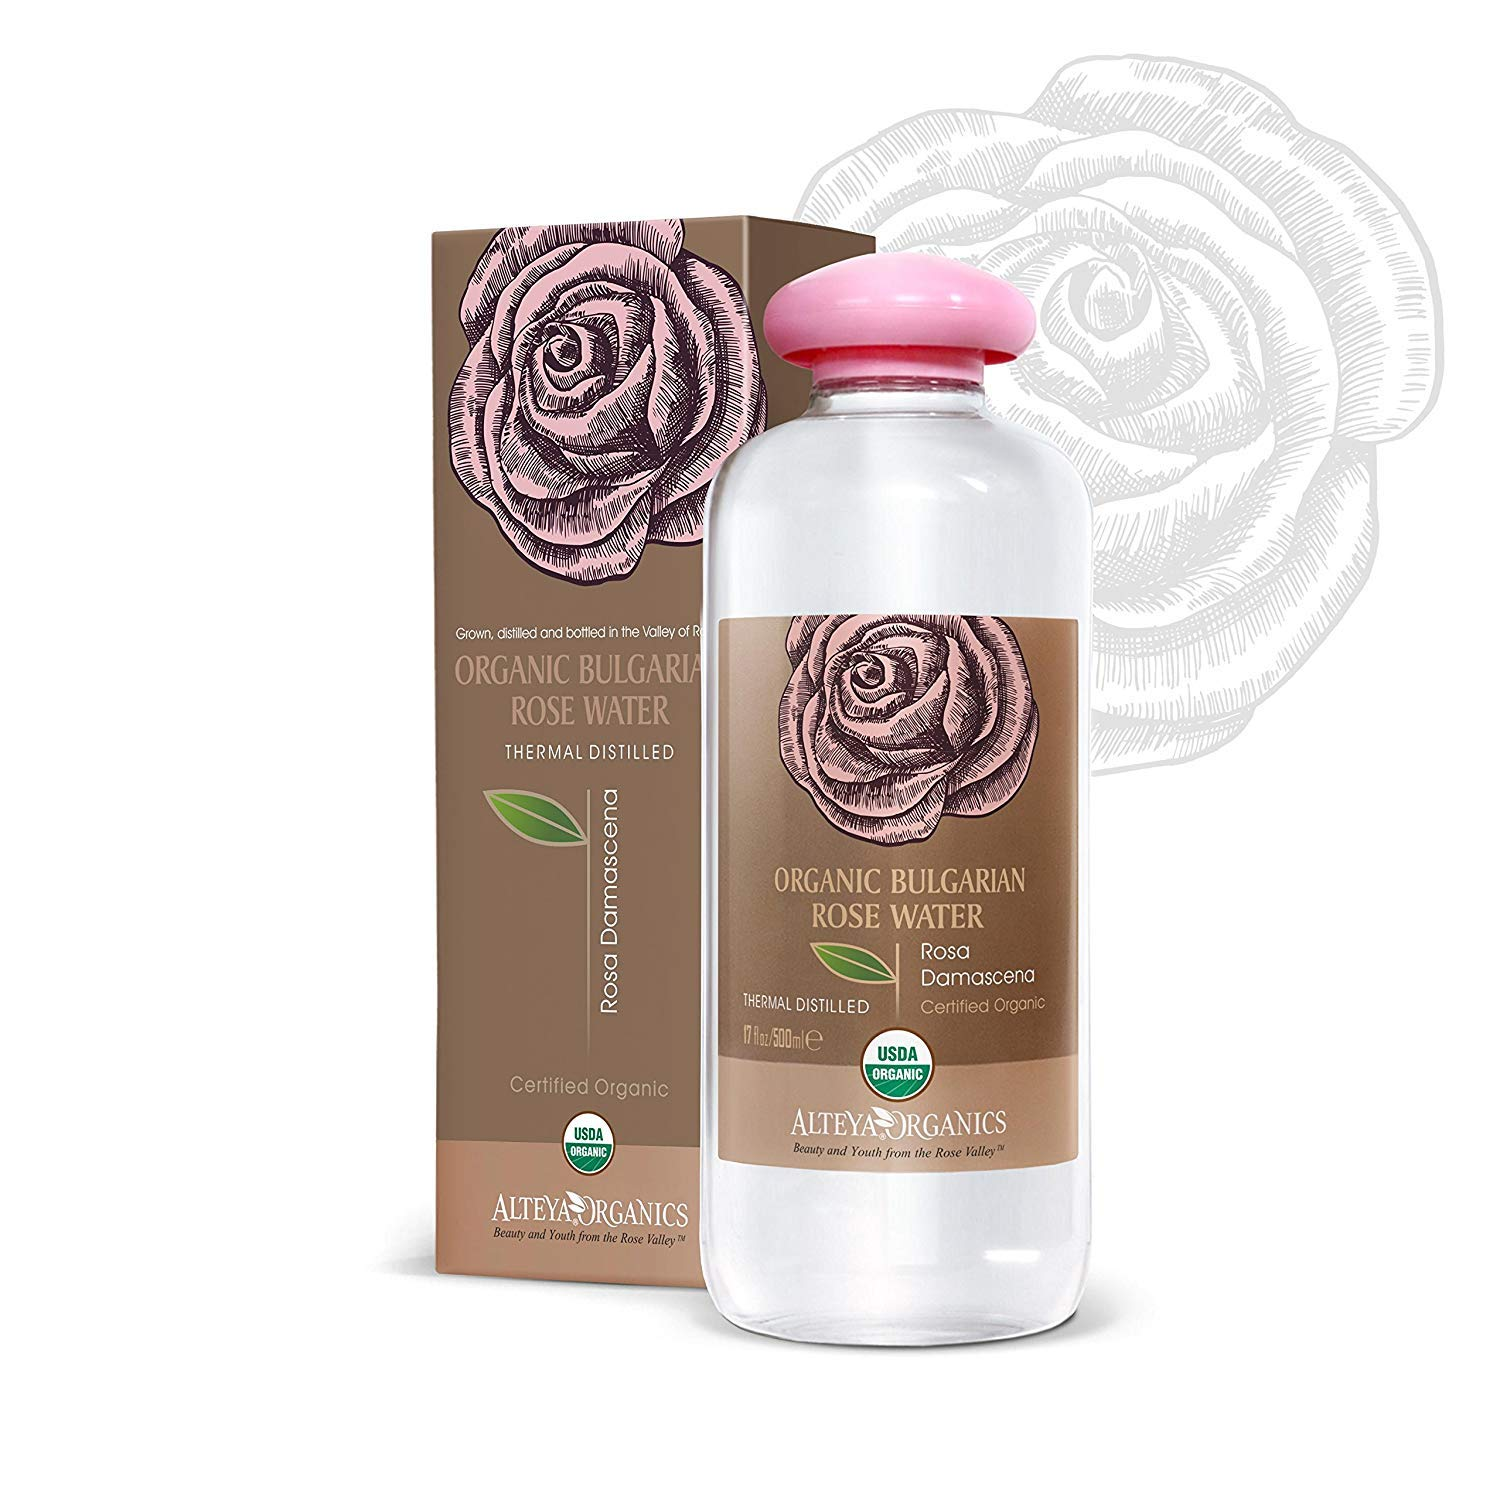 Alteya USDA Organic Bulgarian Rose Water (From New Rose Harvest) - EXTRA LARGE, 17fl oz/500ml, 100% Pure, From Alteya's Bulgarian Rose Fields and Distillery ... by Alteya Organics